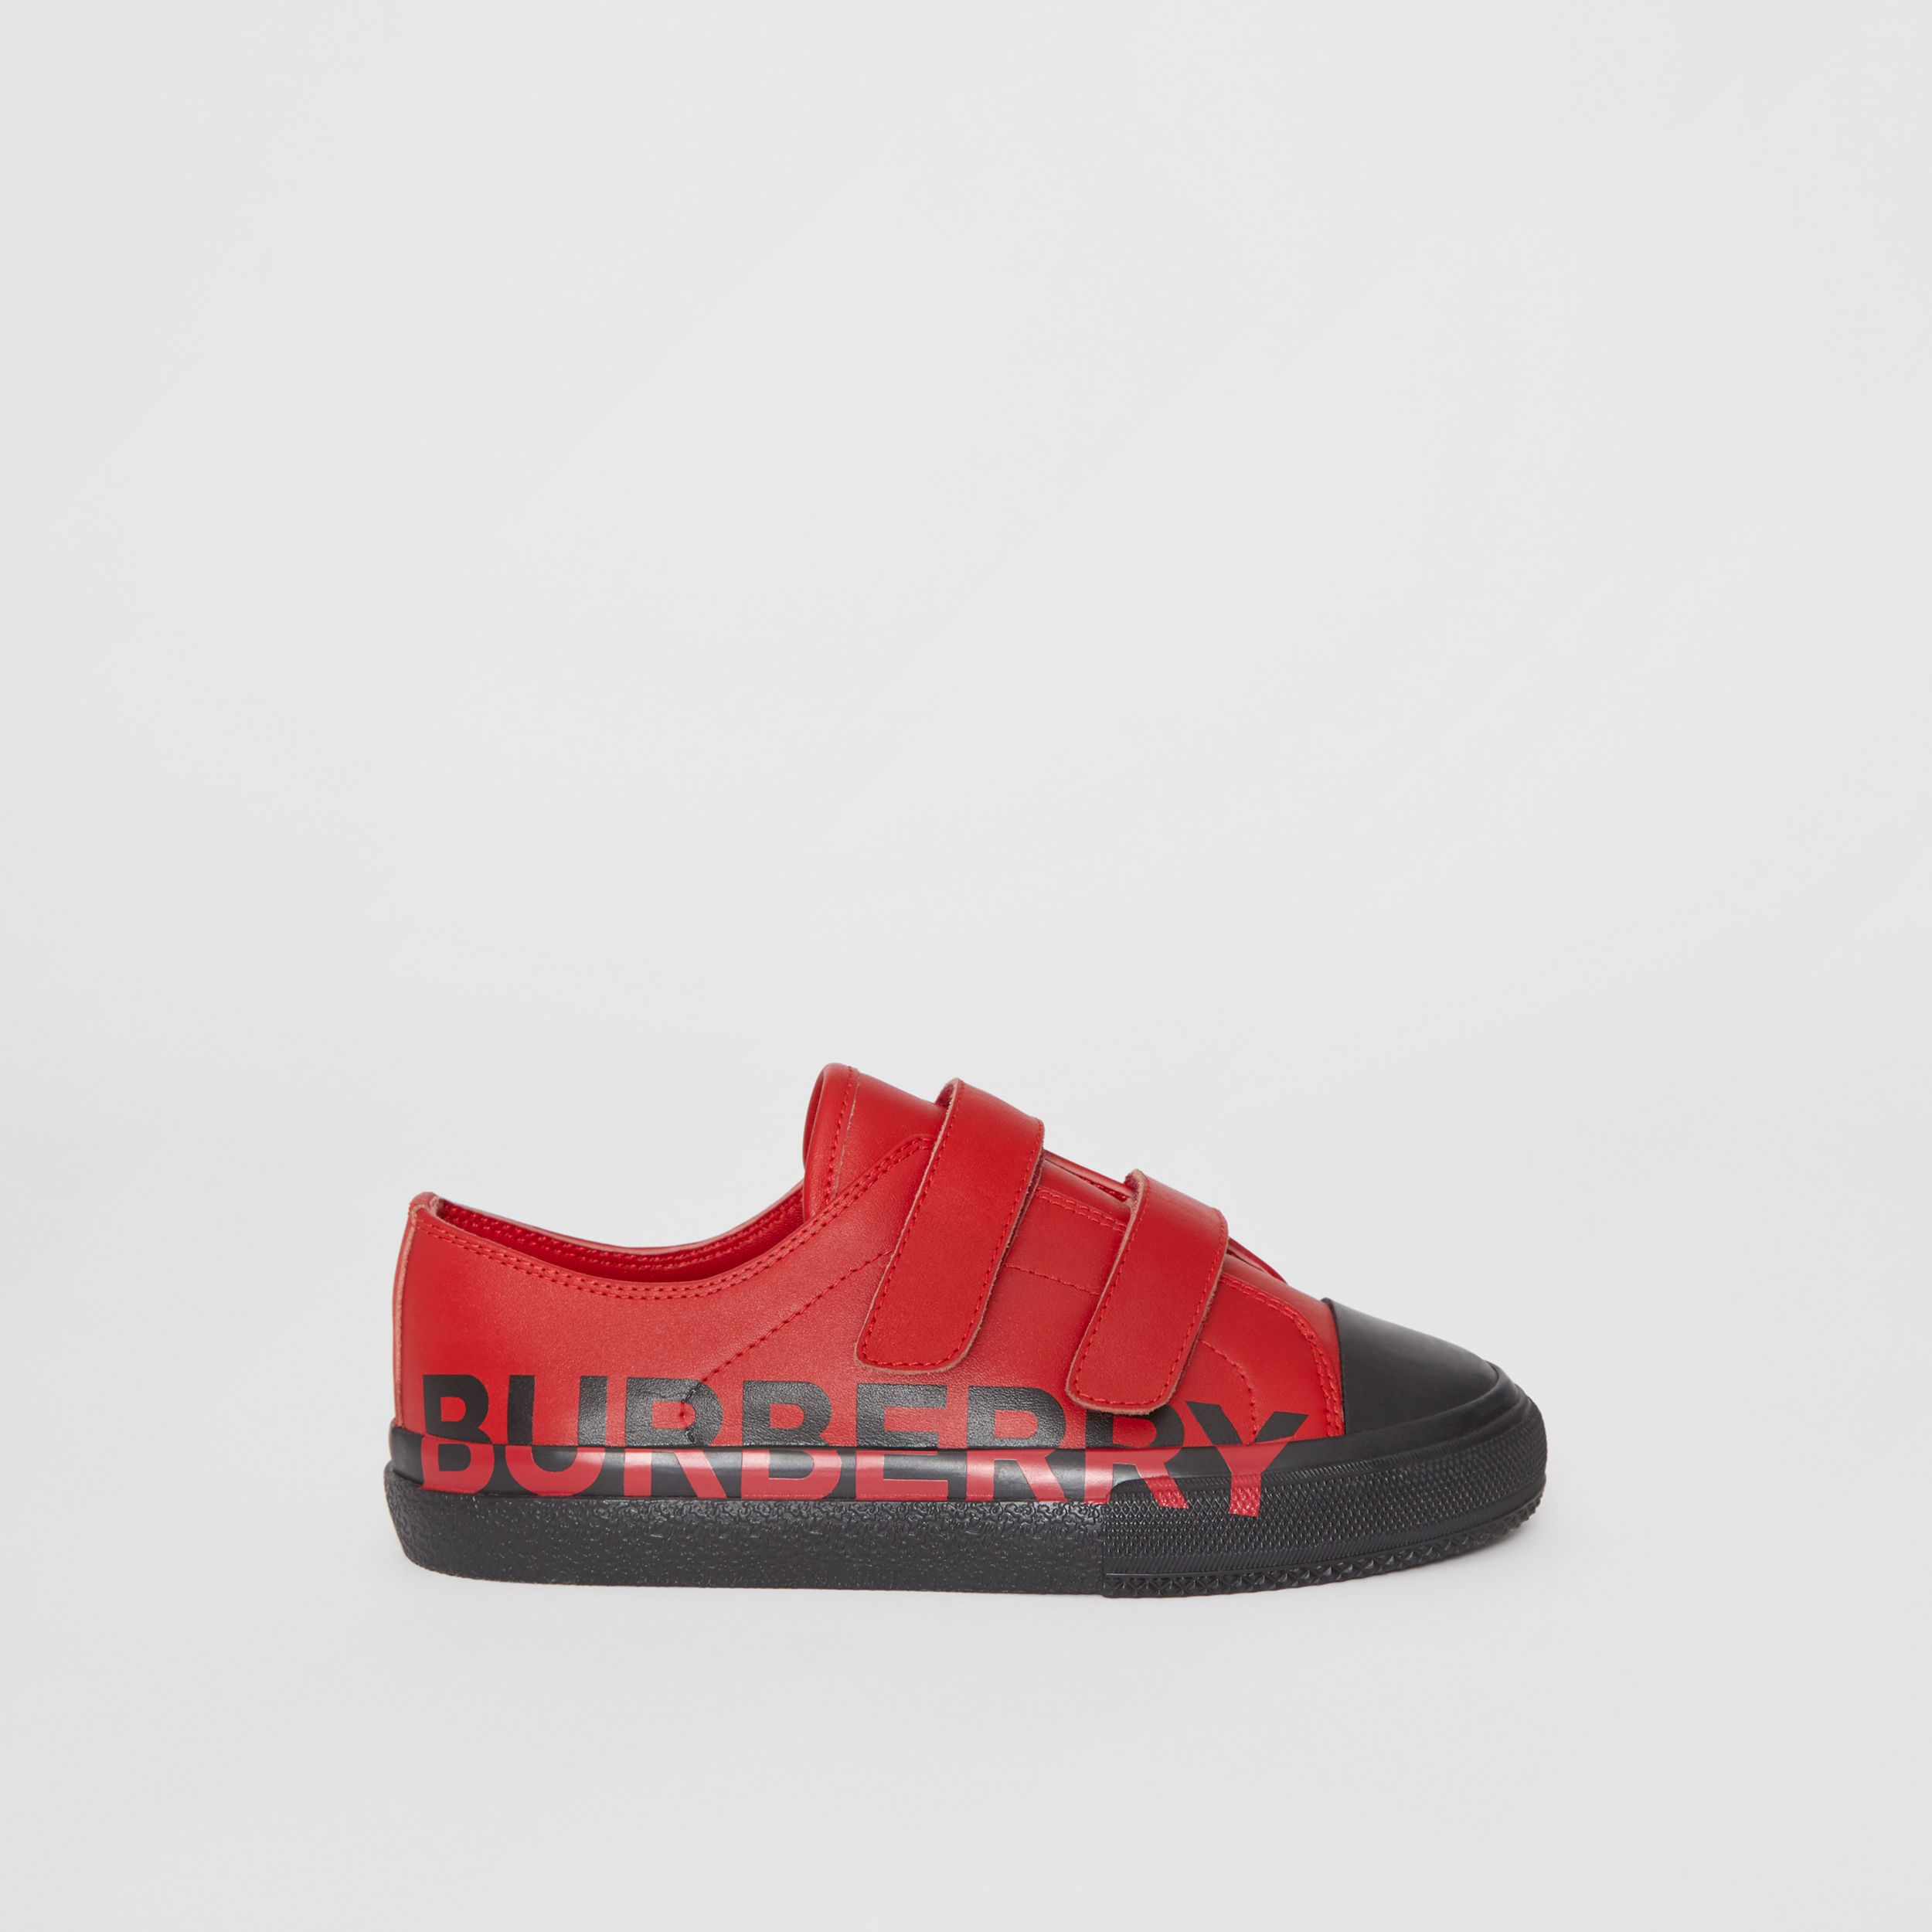 Logo Print Two-tone Leather Sneakers in Bright Red/black - Children | Burberry - 4